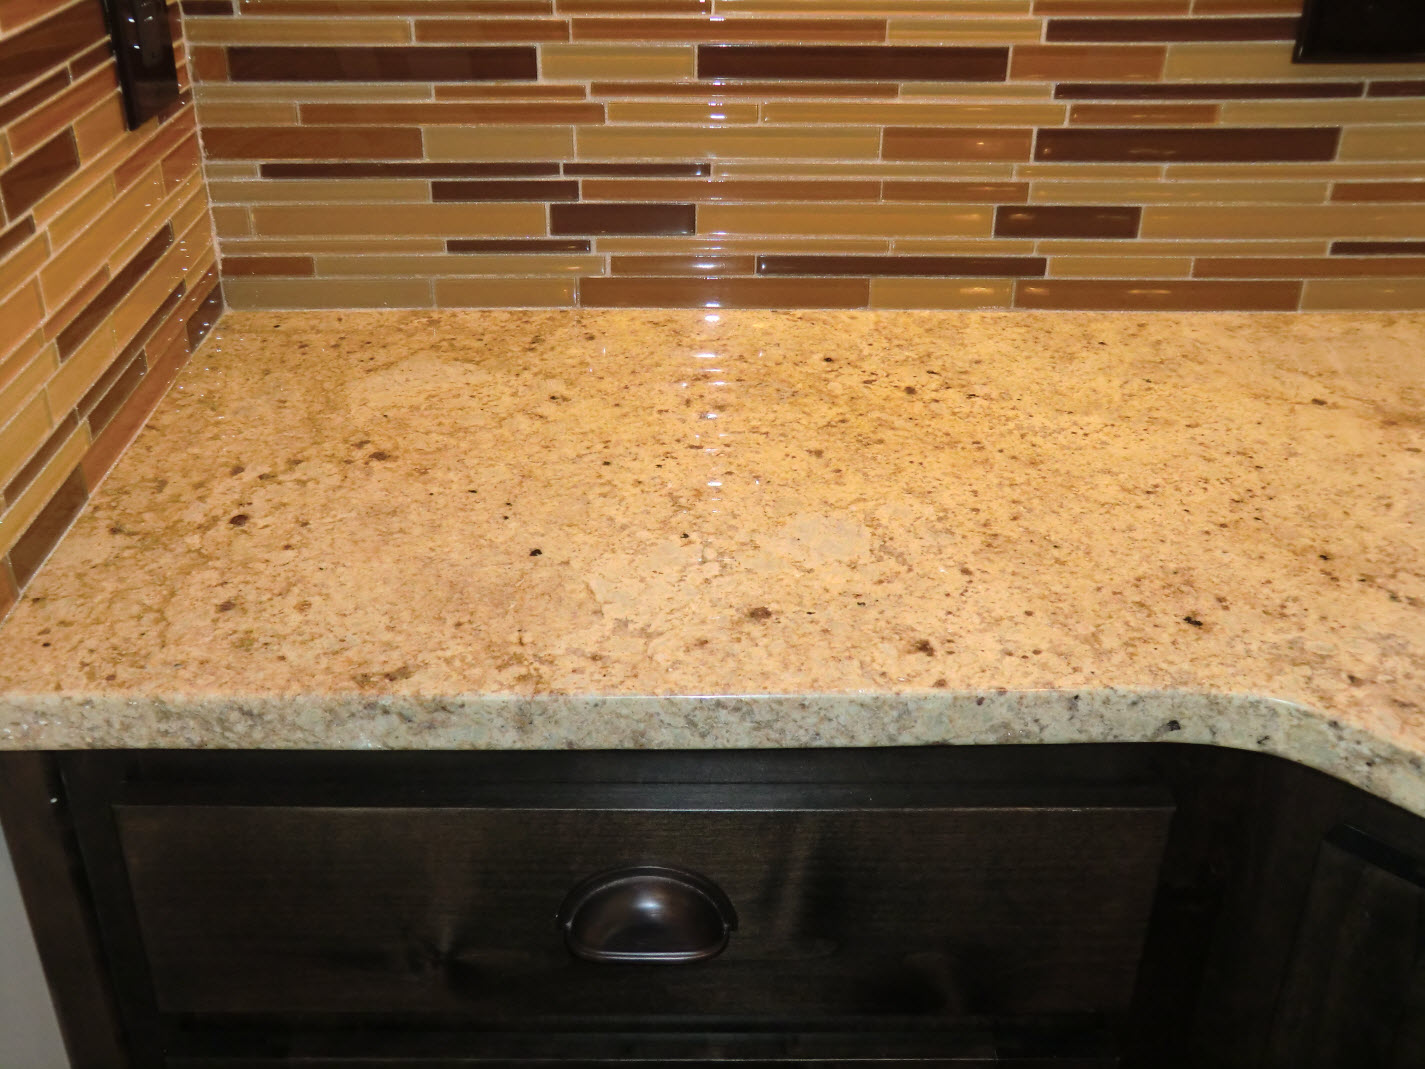 Close up of cabinet, countertop & glass tile backsplash, glowing